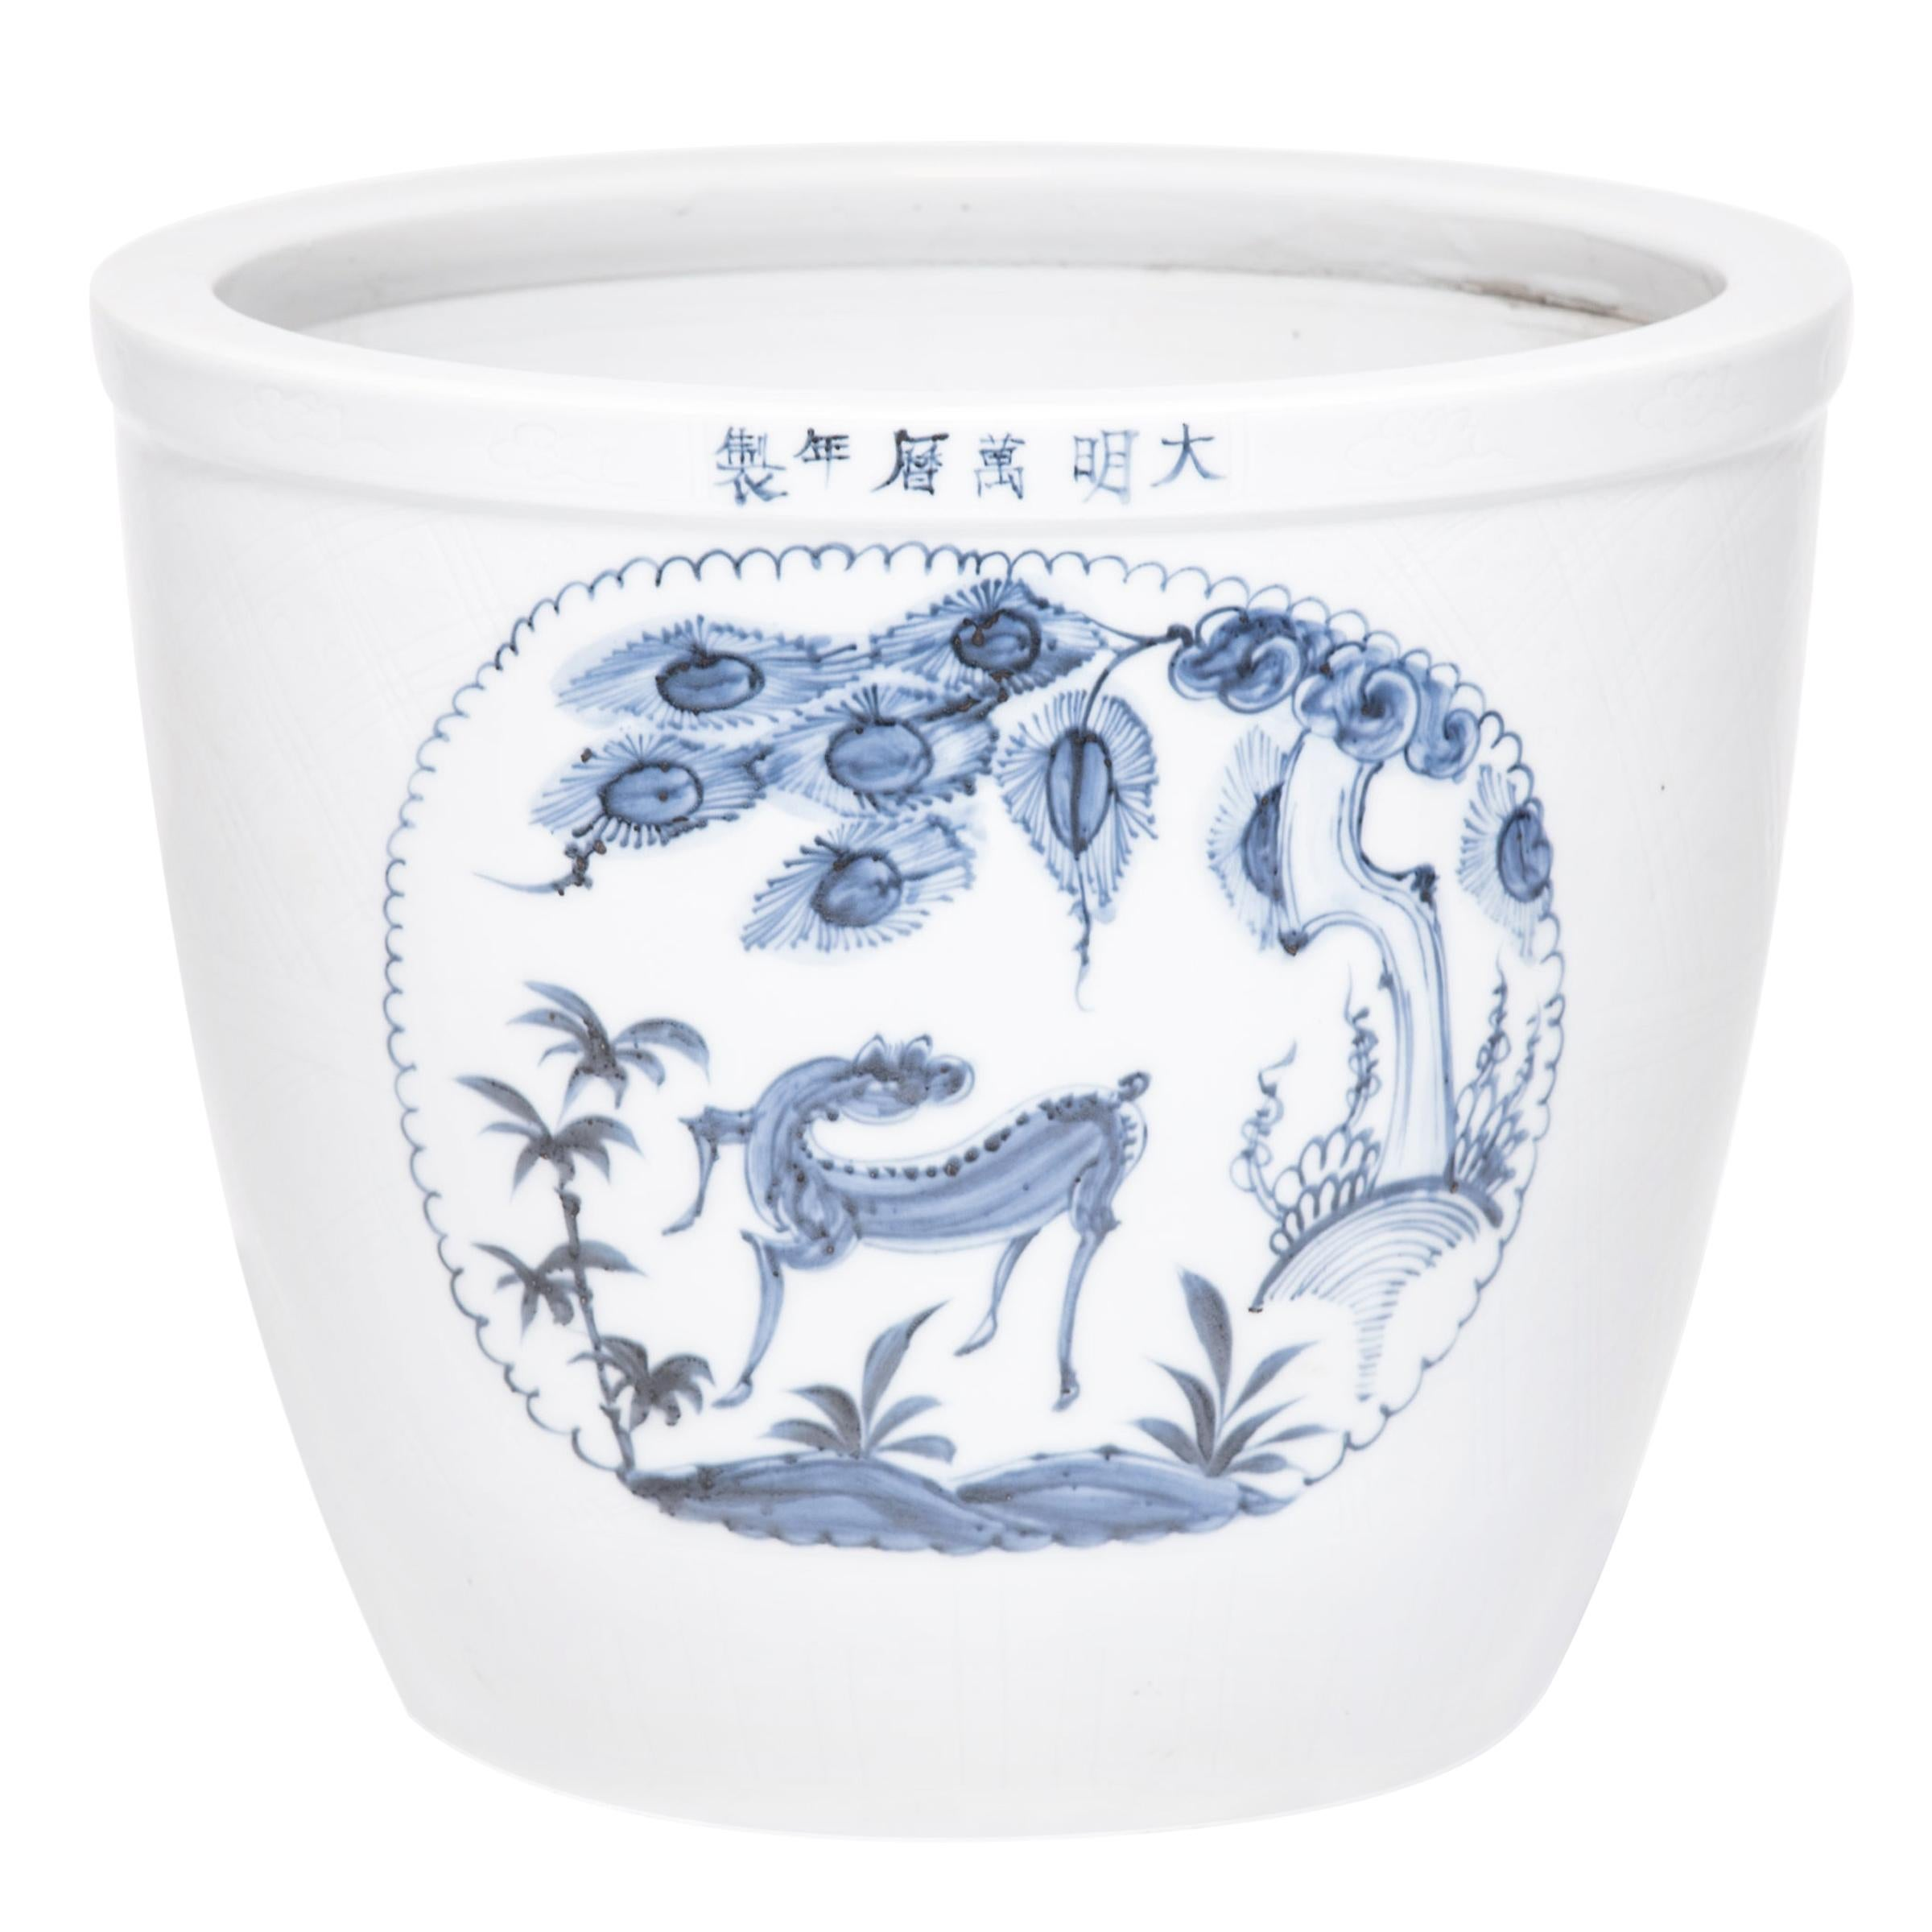 Chinese Blue and White Mythical Bowl with Deer